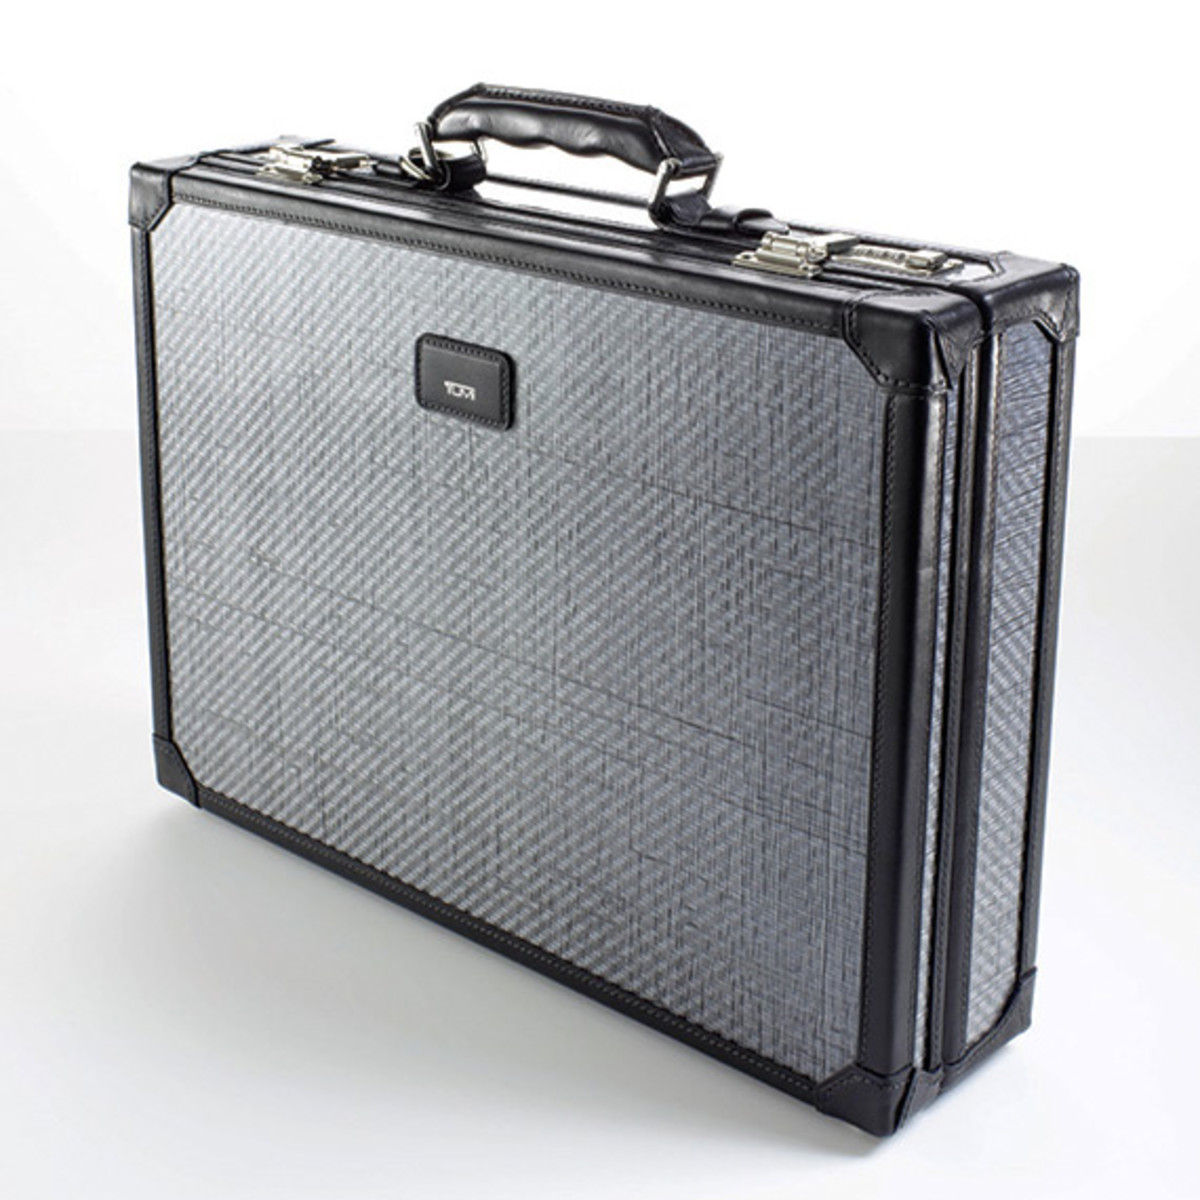 Tumi-Tegra-Lite-Bulletproof-Attache-Case-01